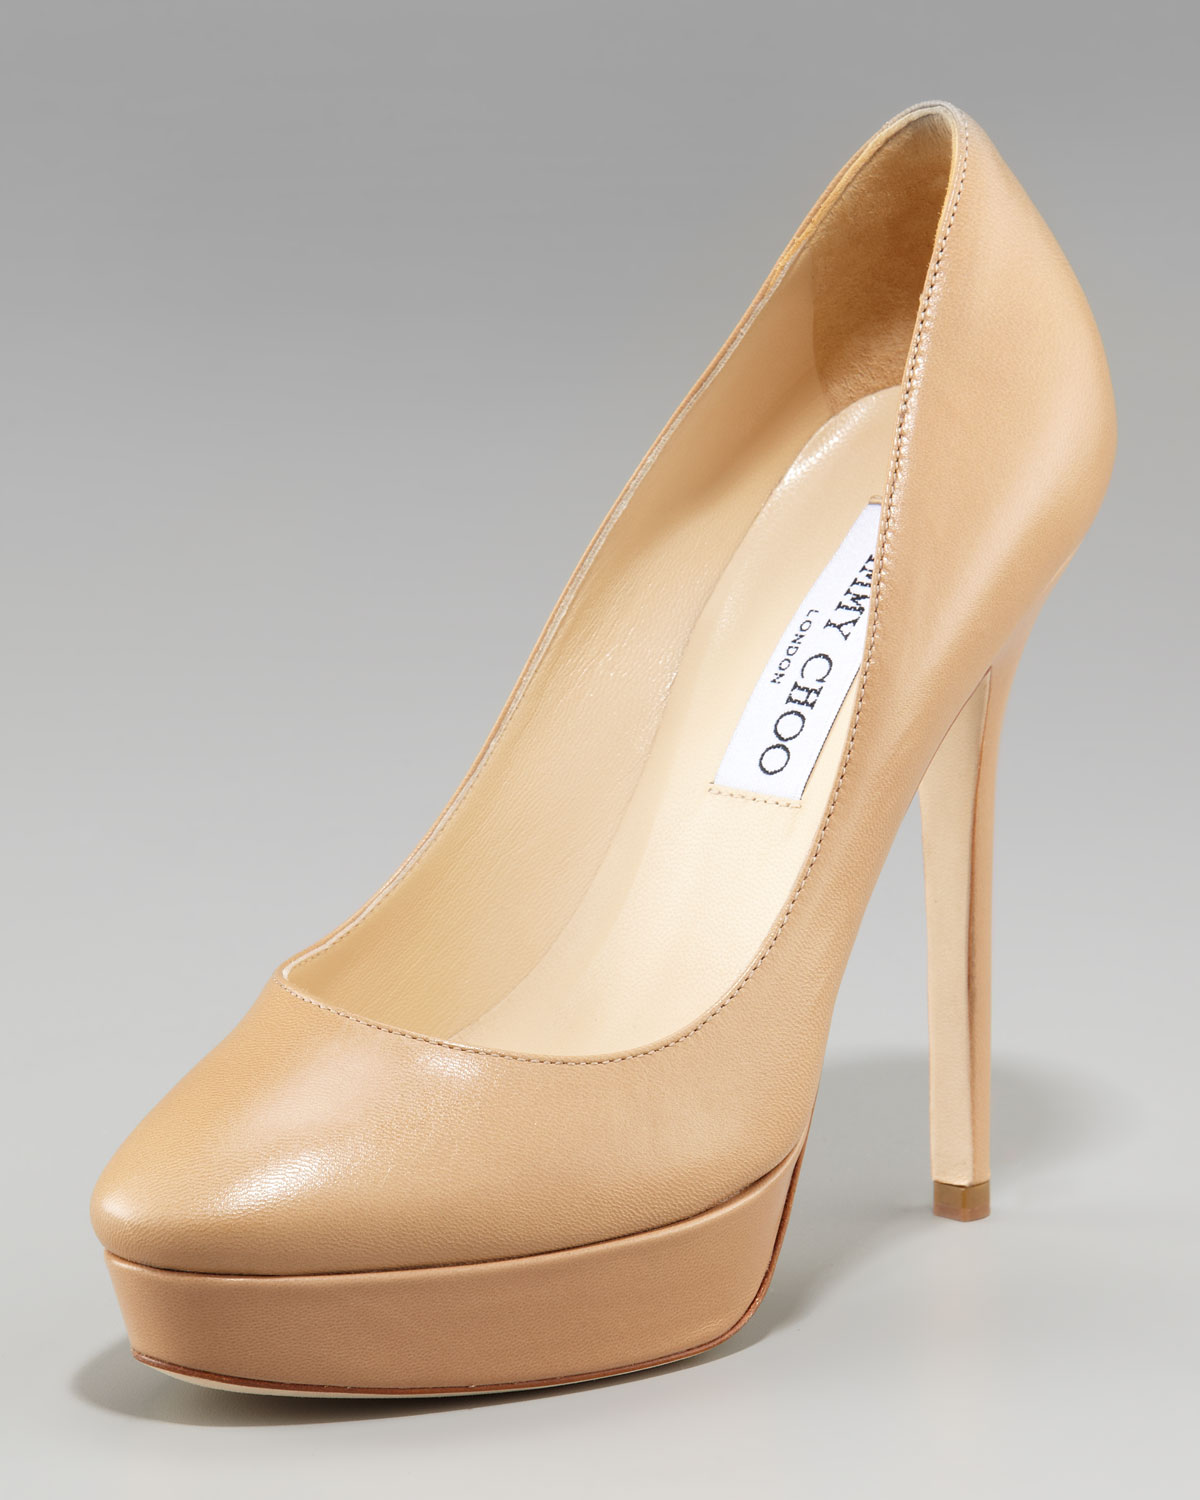 438ac8df976e ... new style lyst jimmy choo cosmic leather platform pump in natural fce12  e818b